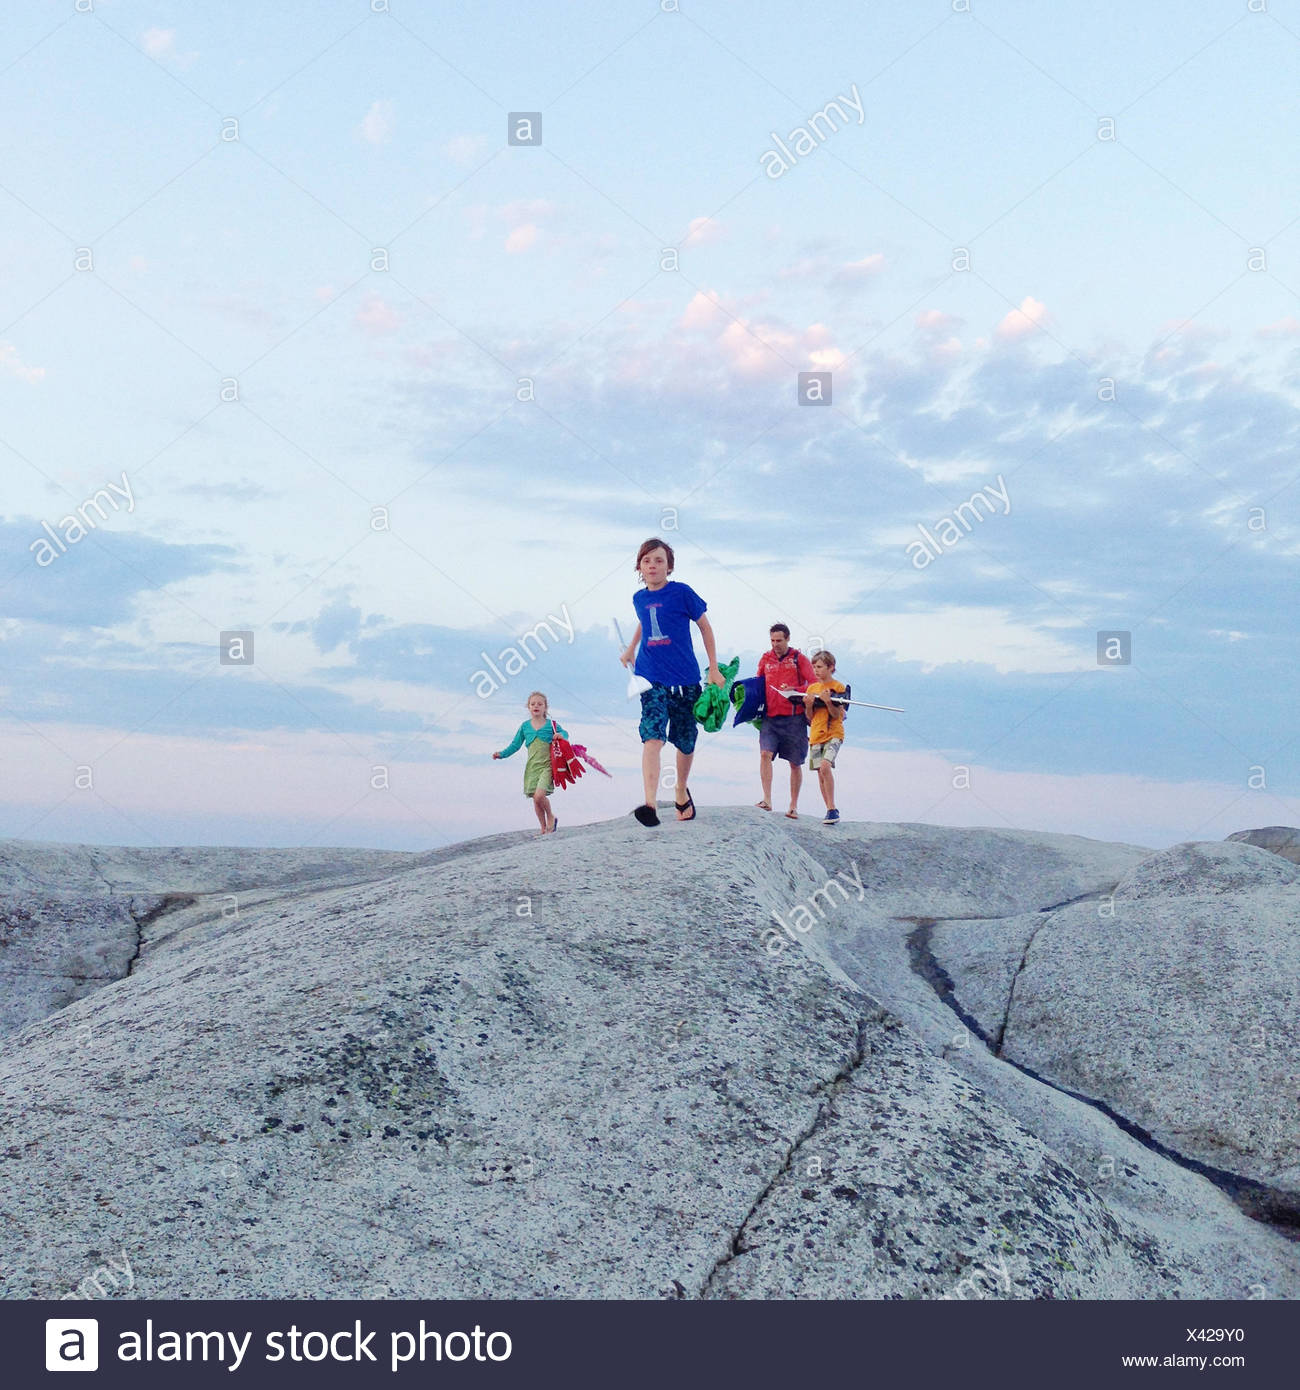 Father with three children walking across rocks, Norway - Stock Image